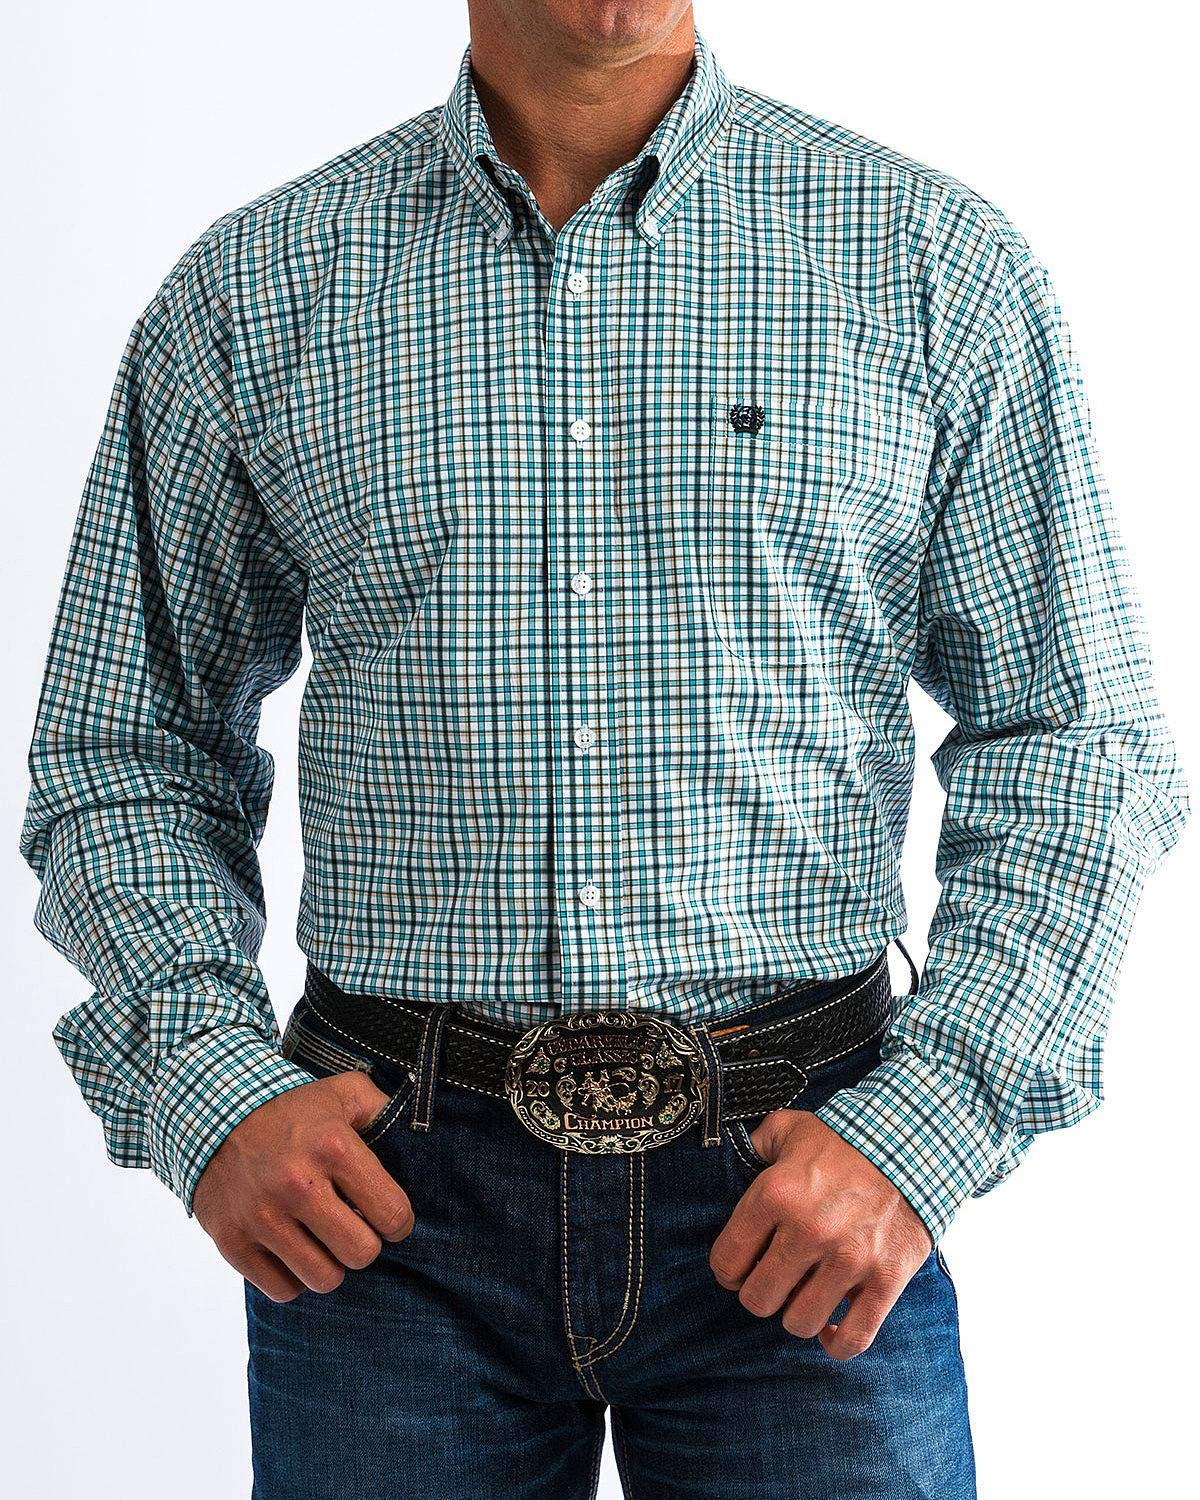 Cinch Men's Classic Fit Long Sleeve Button One Open Pocket Plaid Shirt, White/Teal, XXL